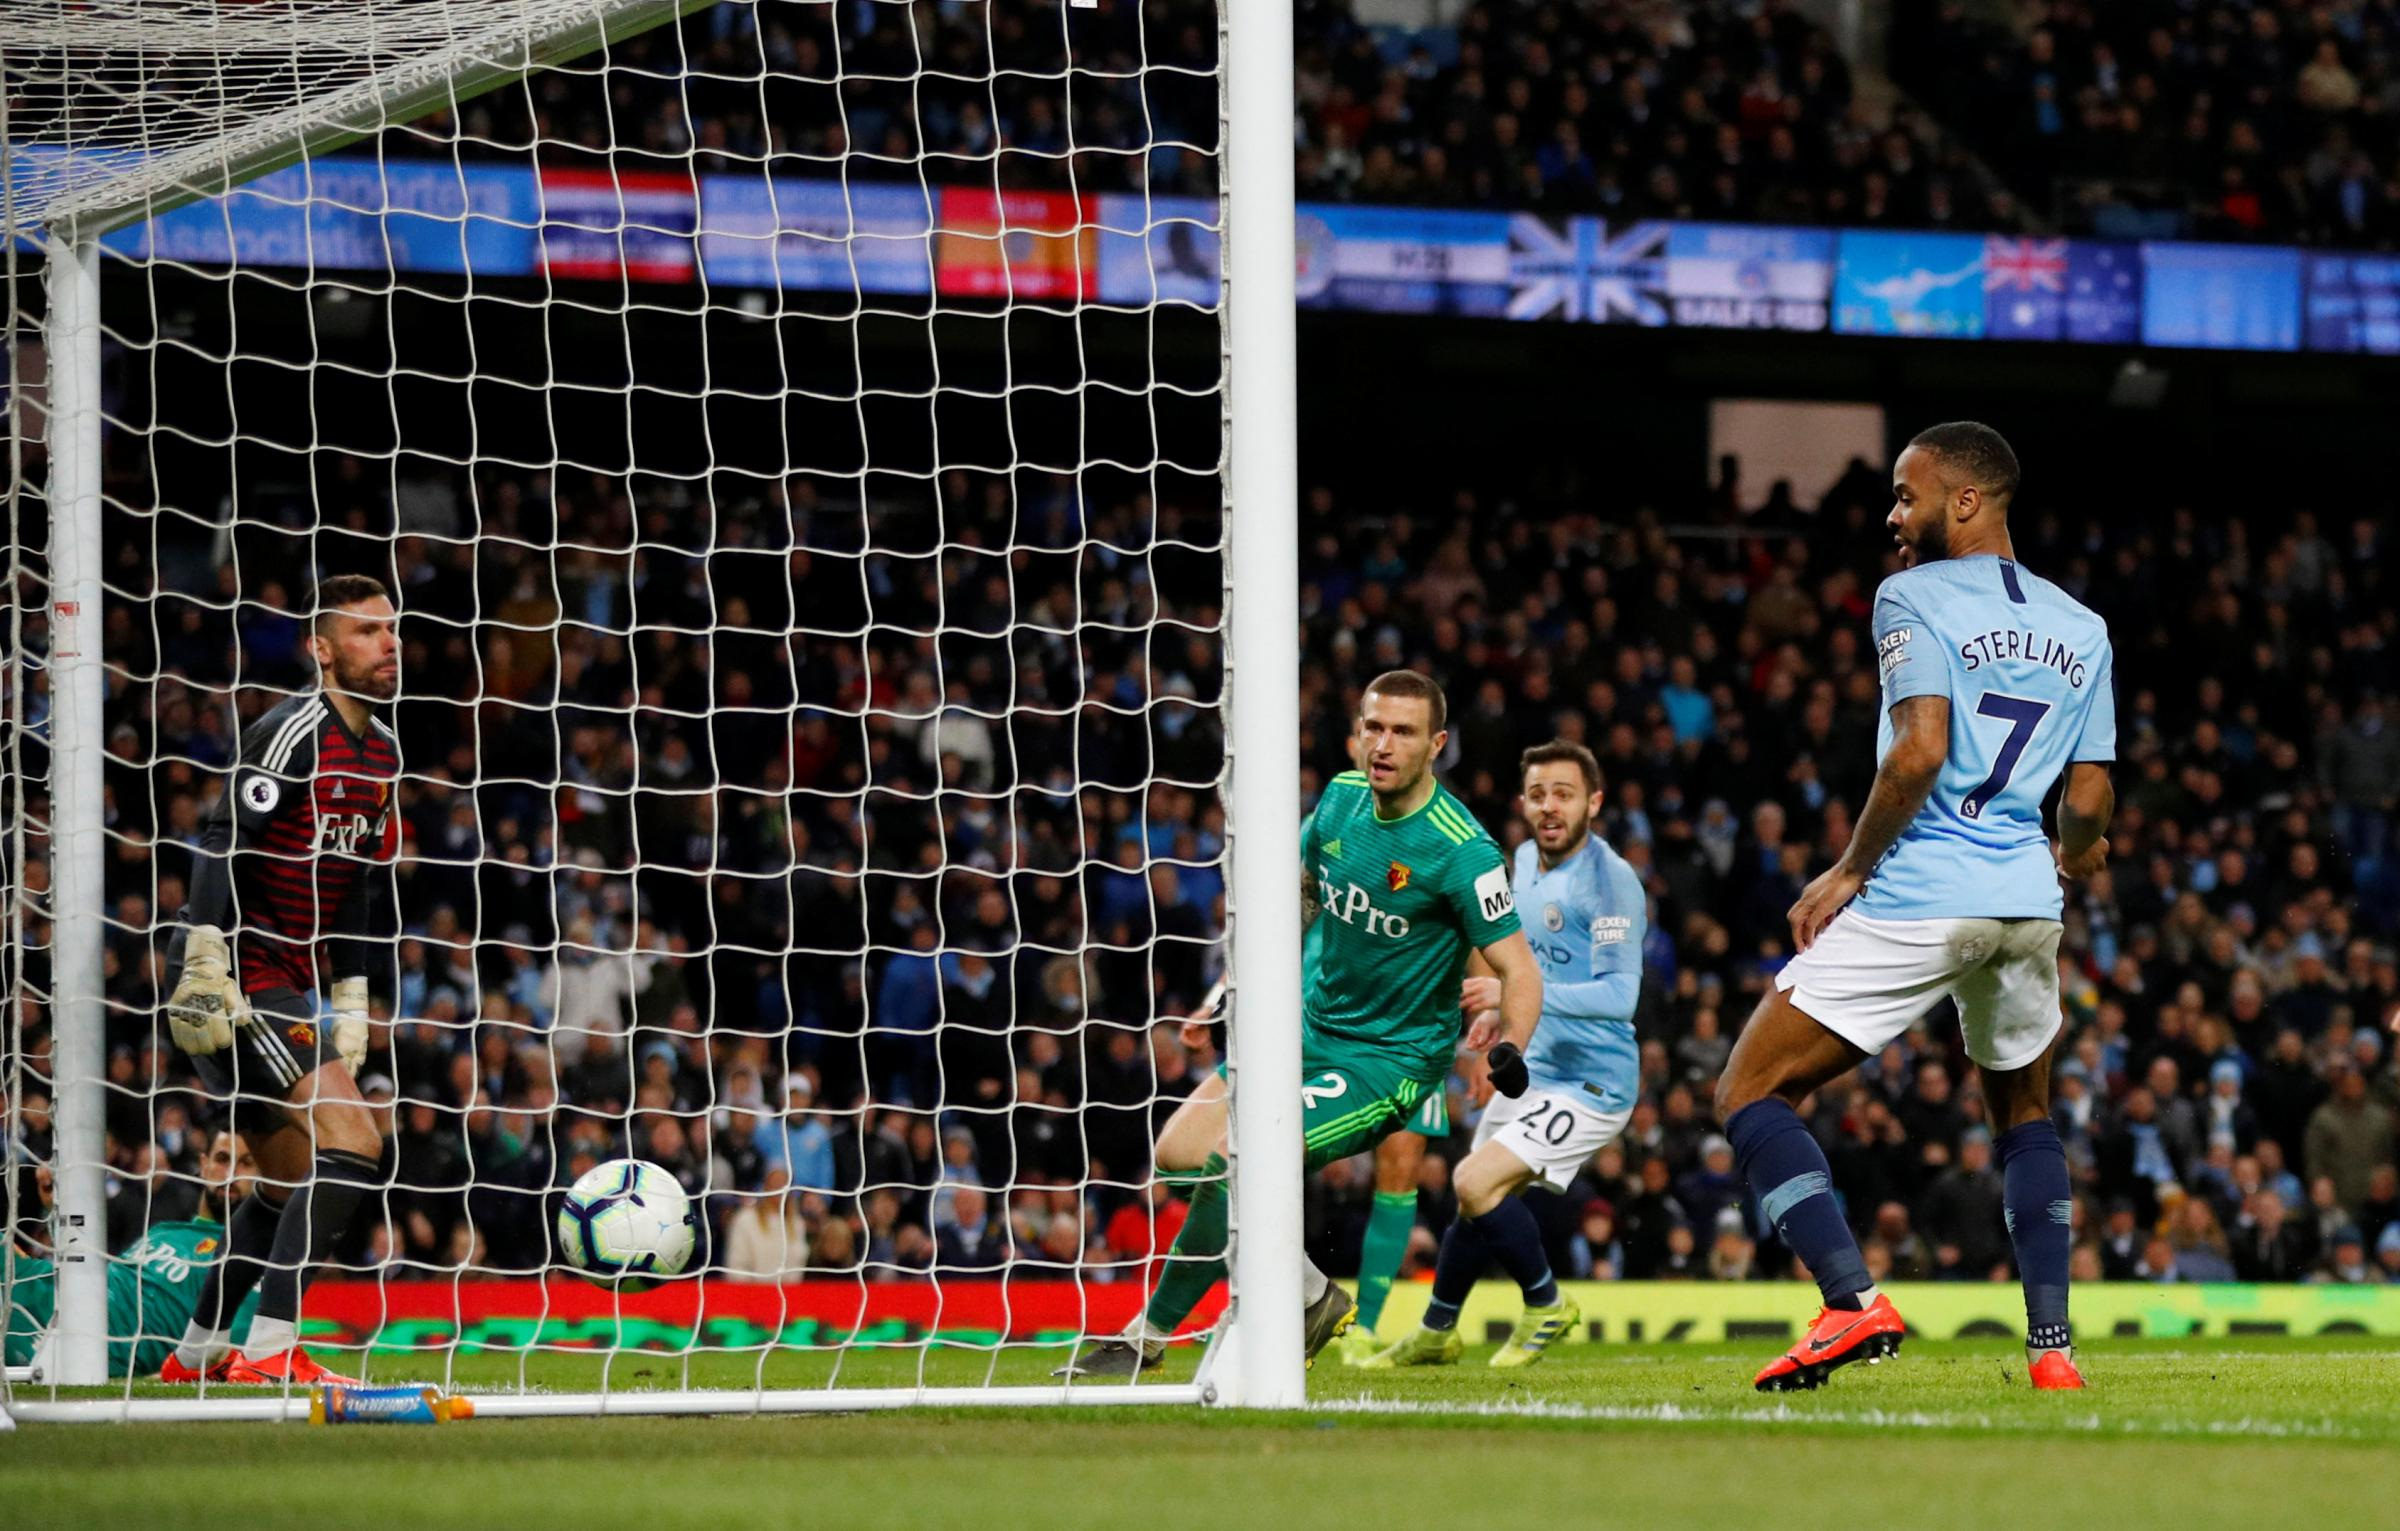 REPORT: Sterling hat-trick thwarts Hornets